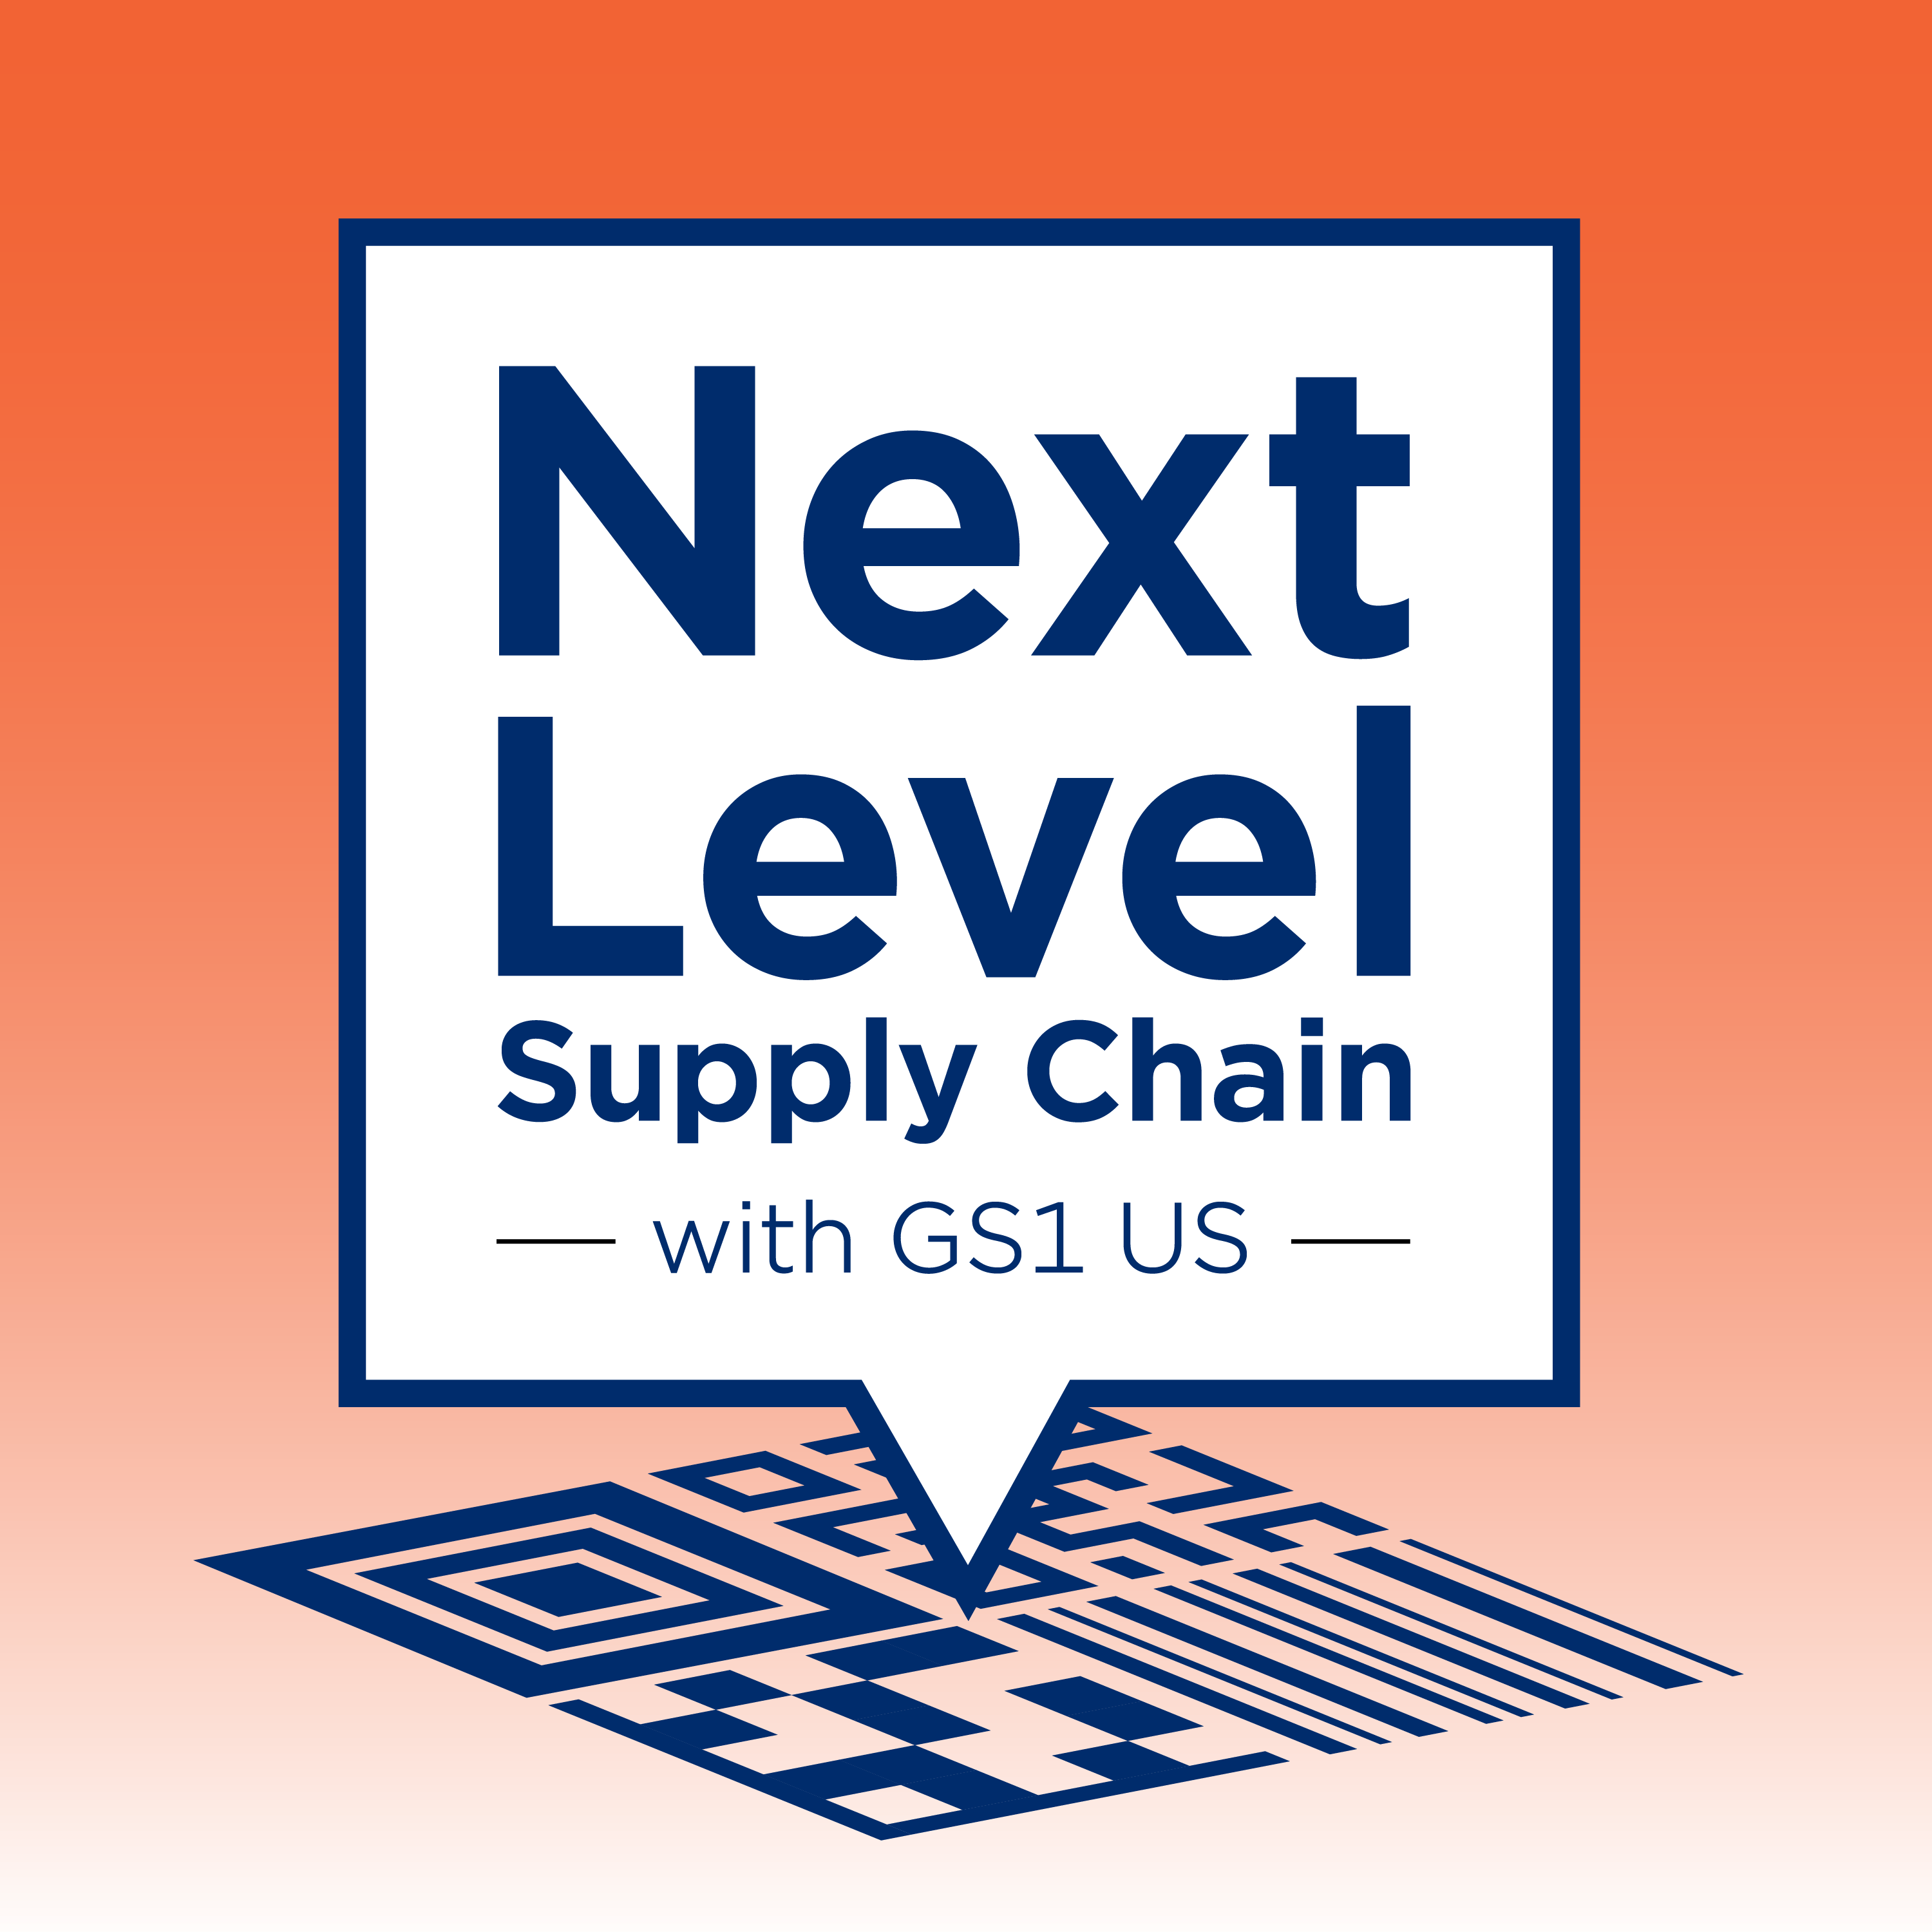 Next Level Supply Chain with GS1 US